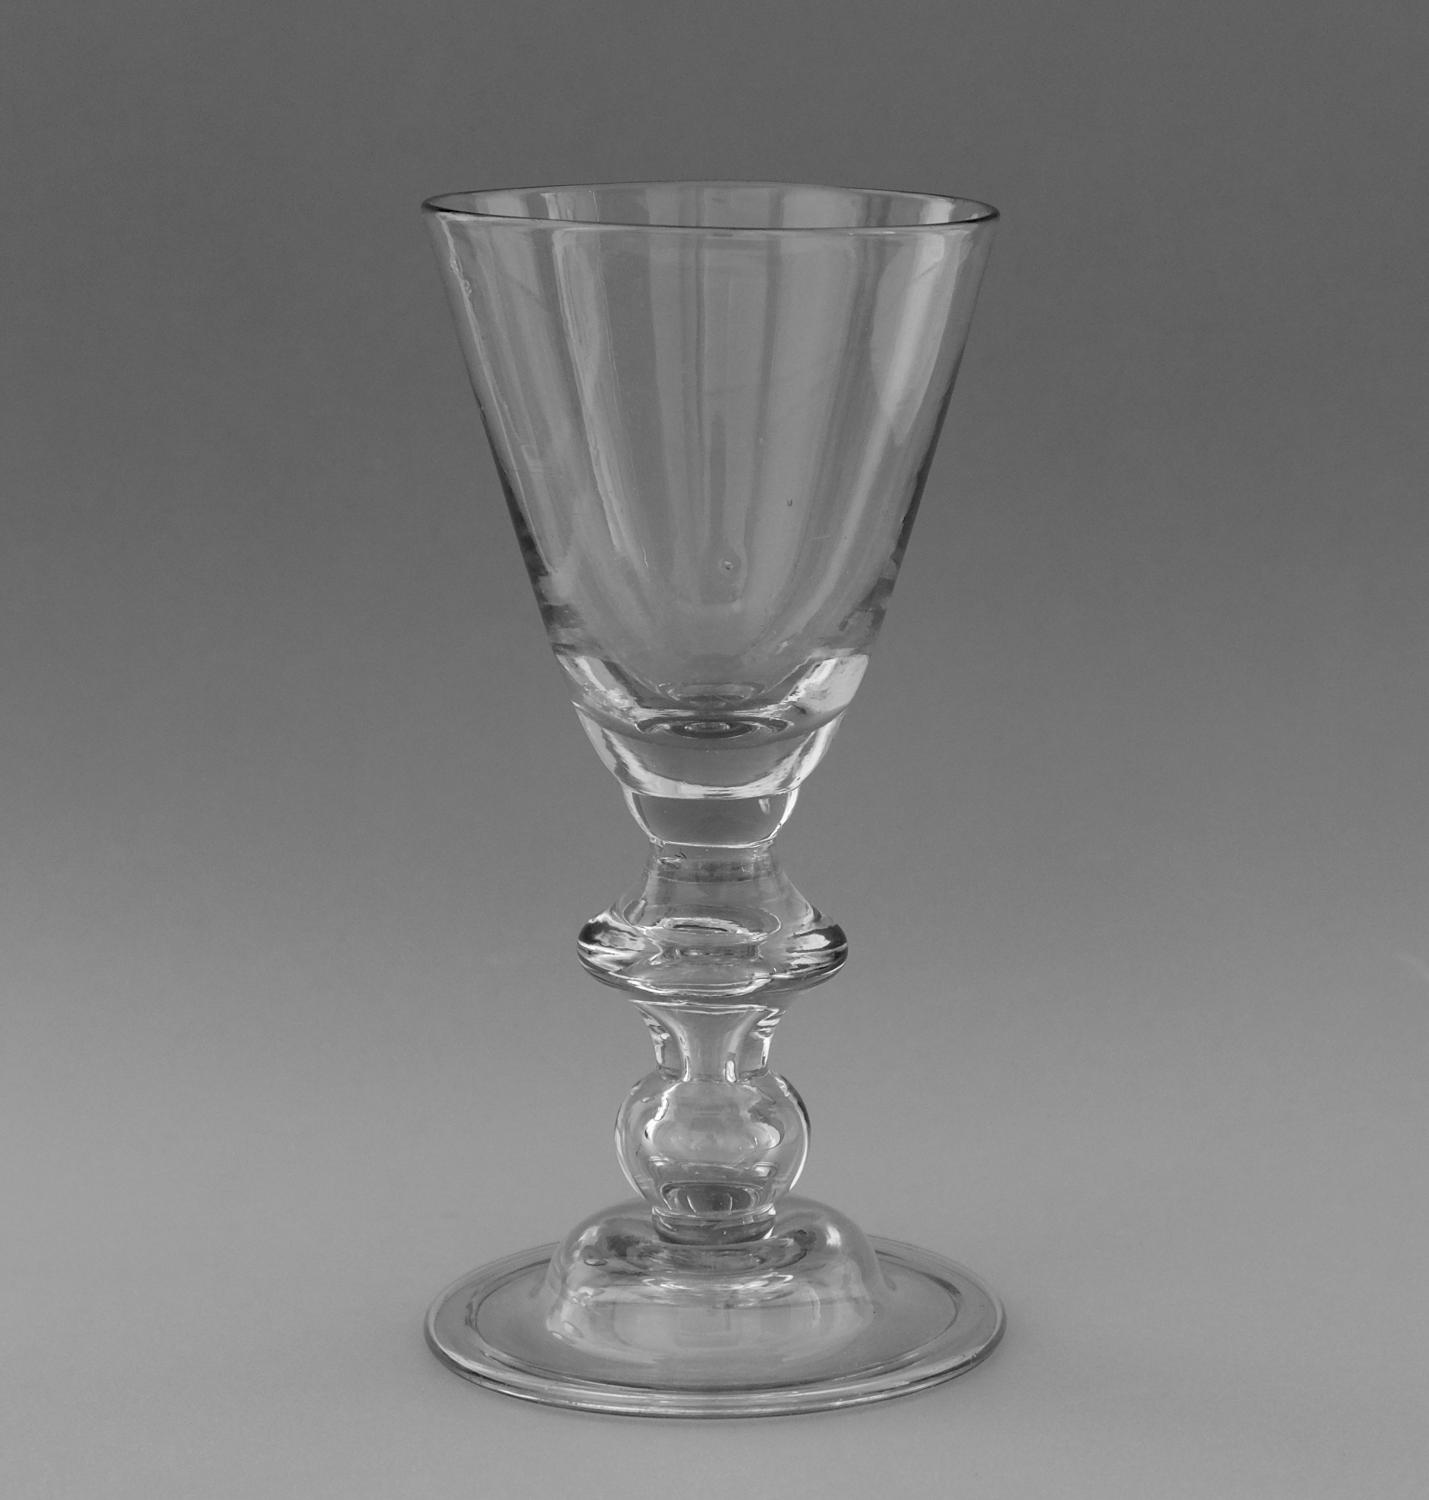 Baluster wine glass C1715-20